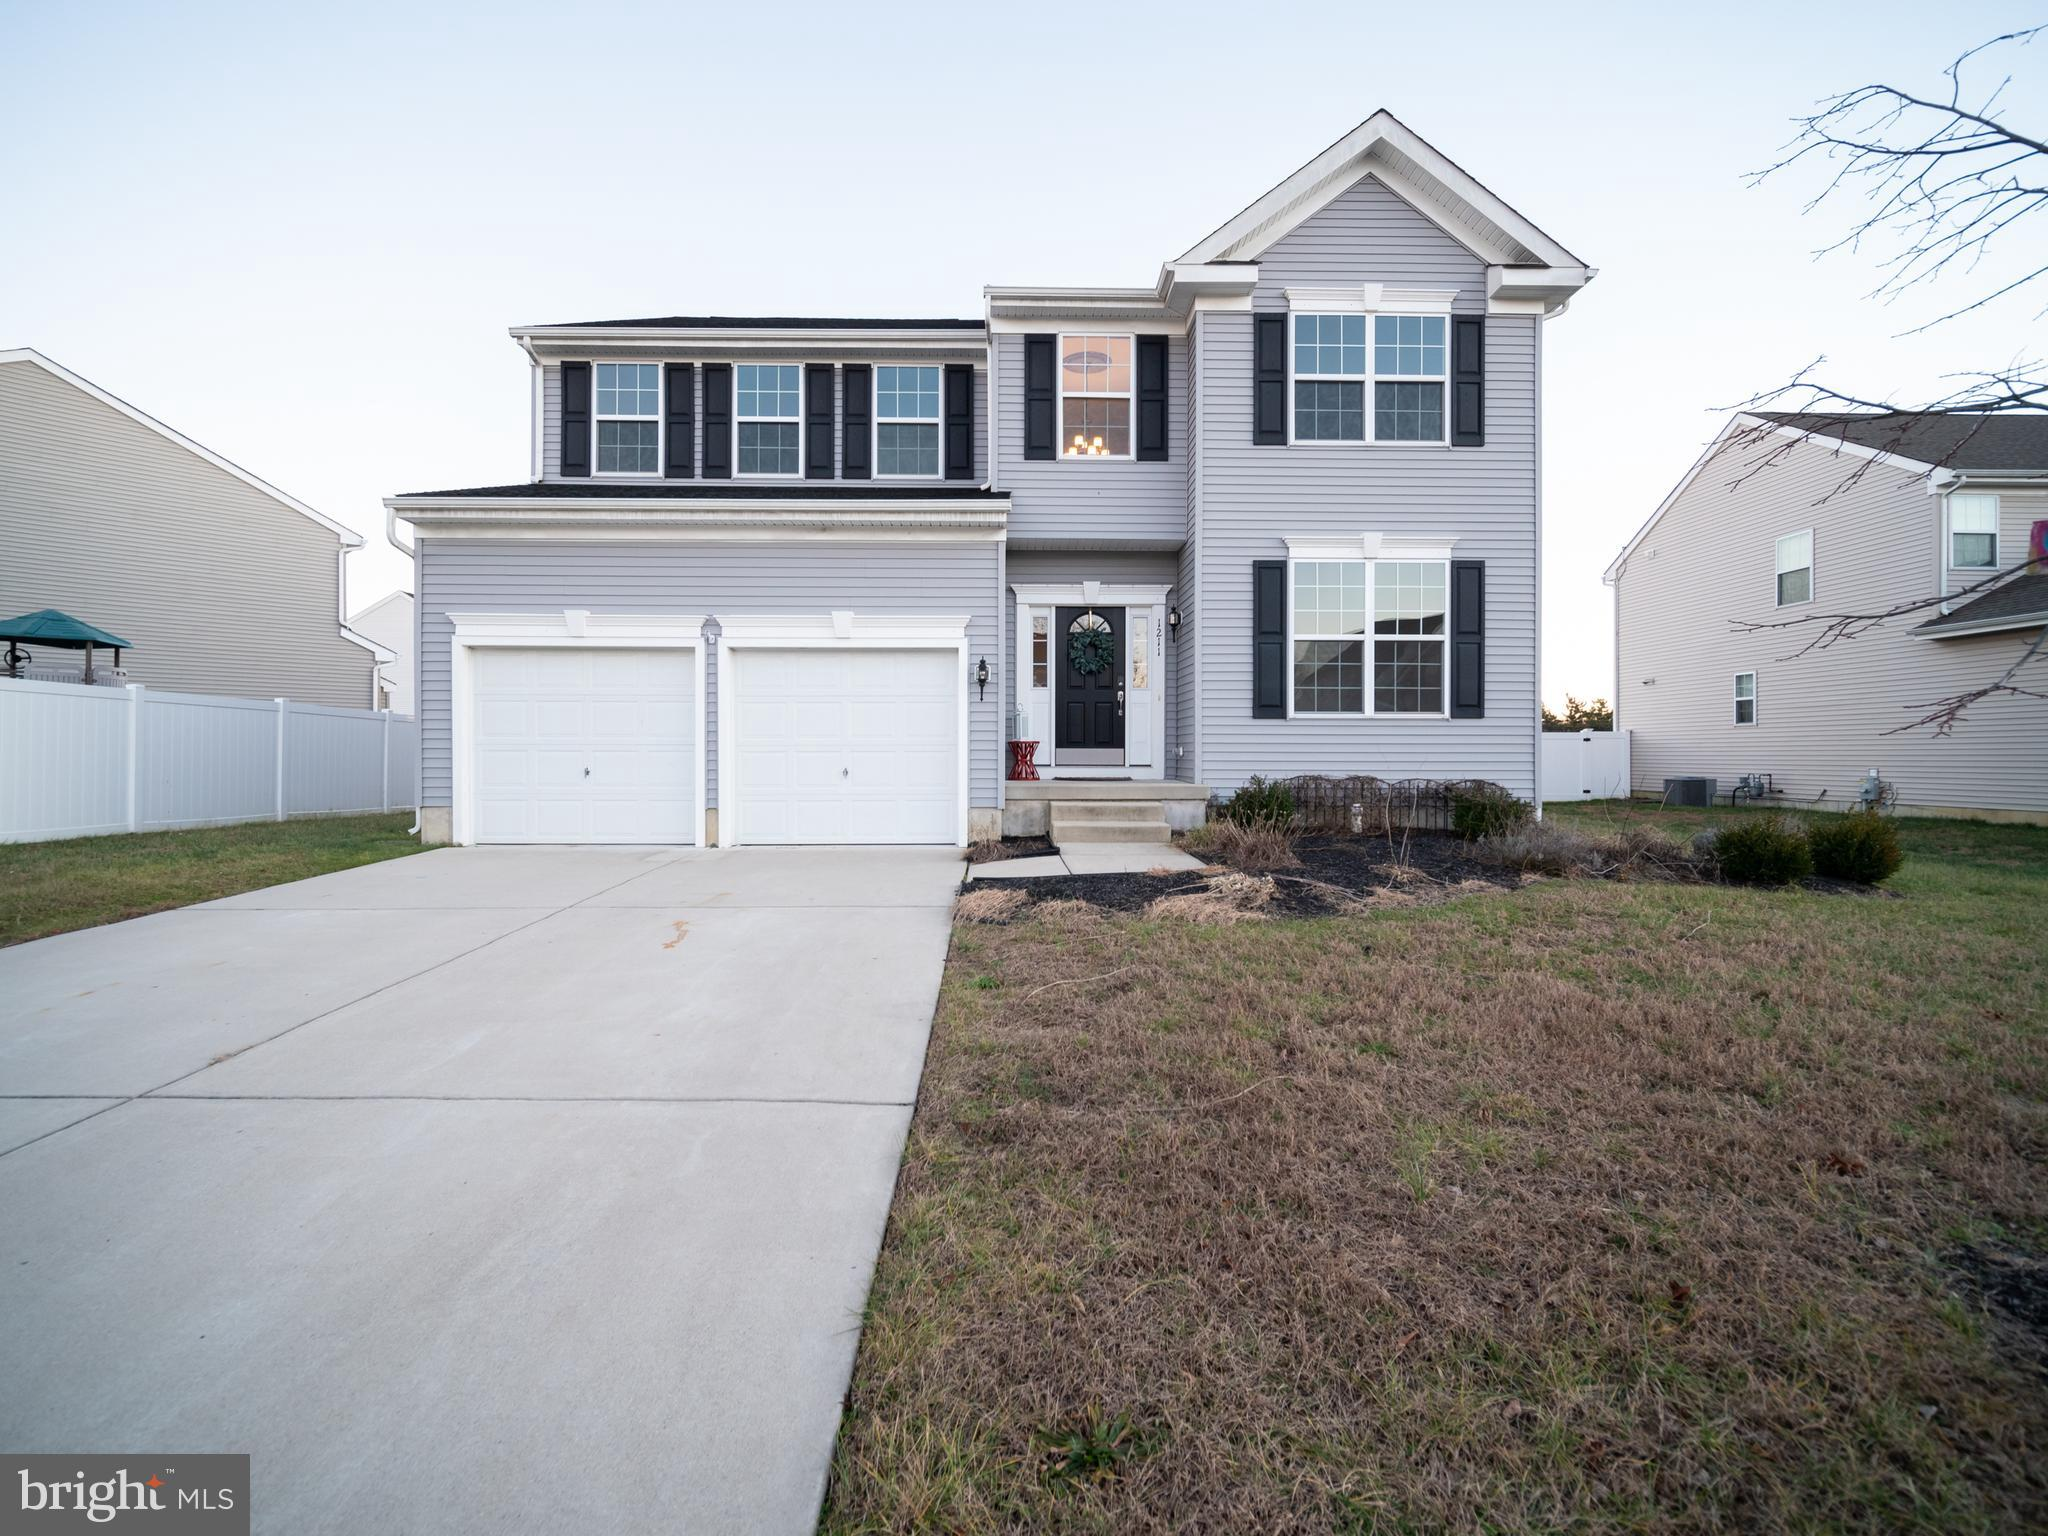 1211 KAREN ANN, WEST DEPTFORD, NJ 08086